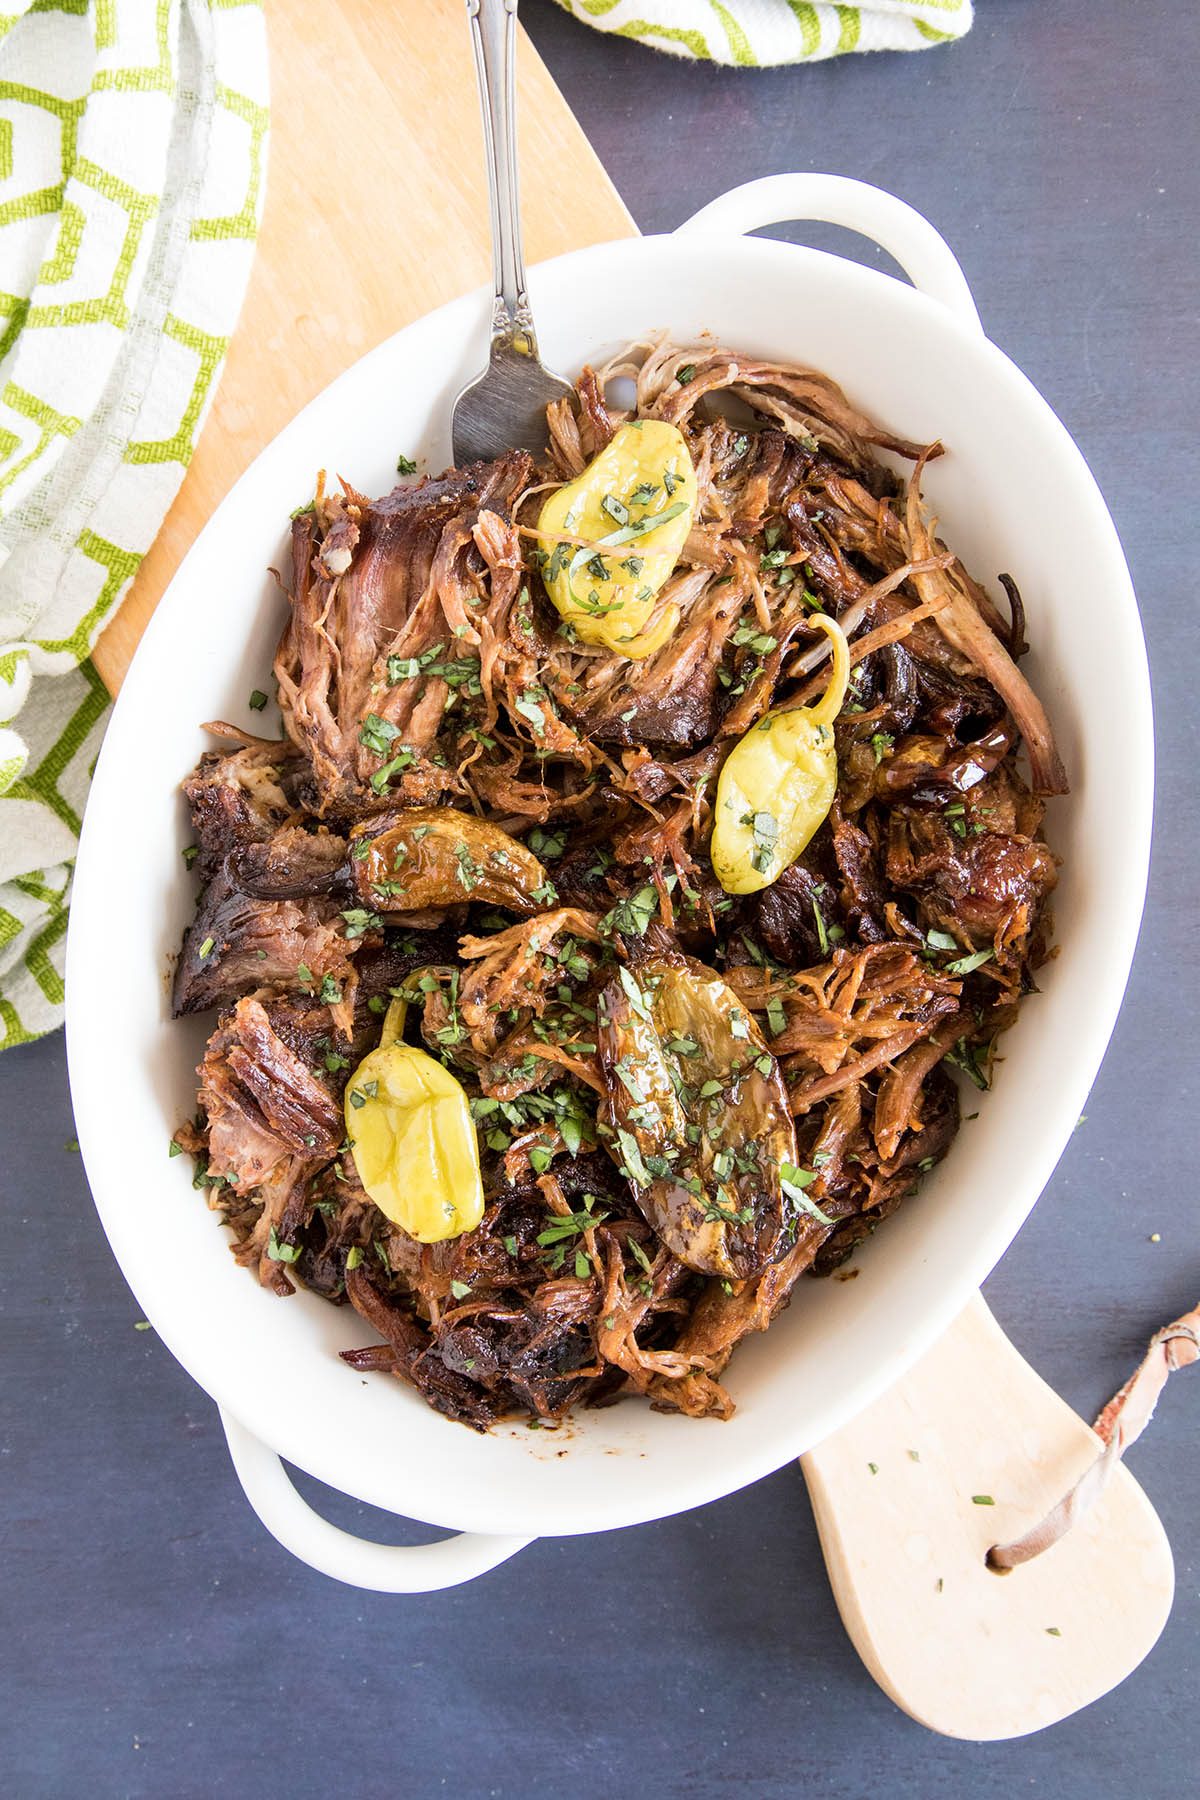 Cool Mom Eats weekly meal plan: Mississippi Pot Roast at Chili Pepper Madness